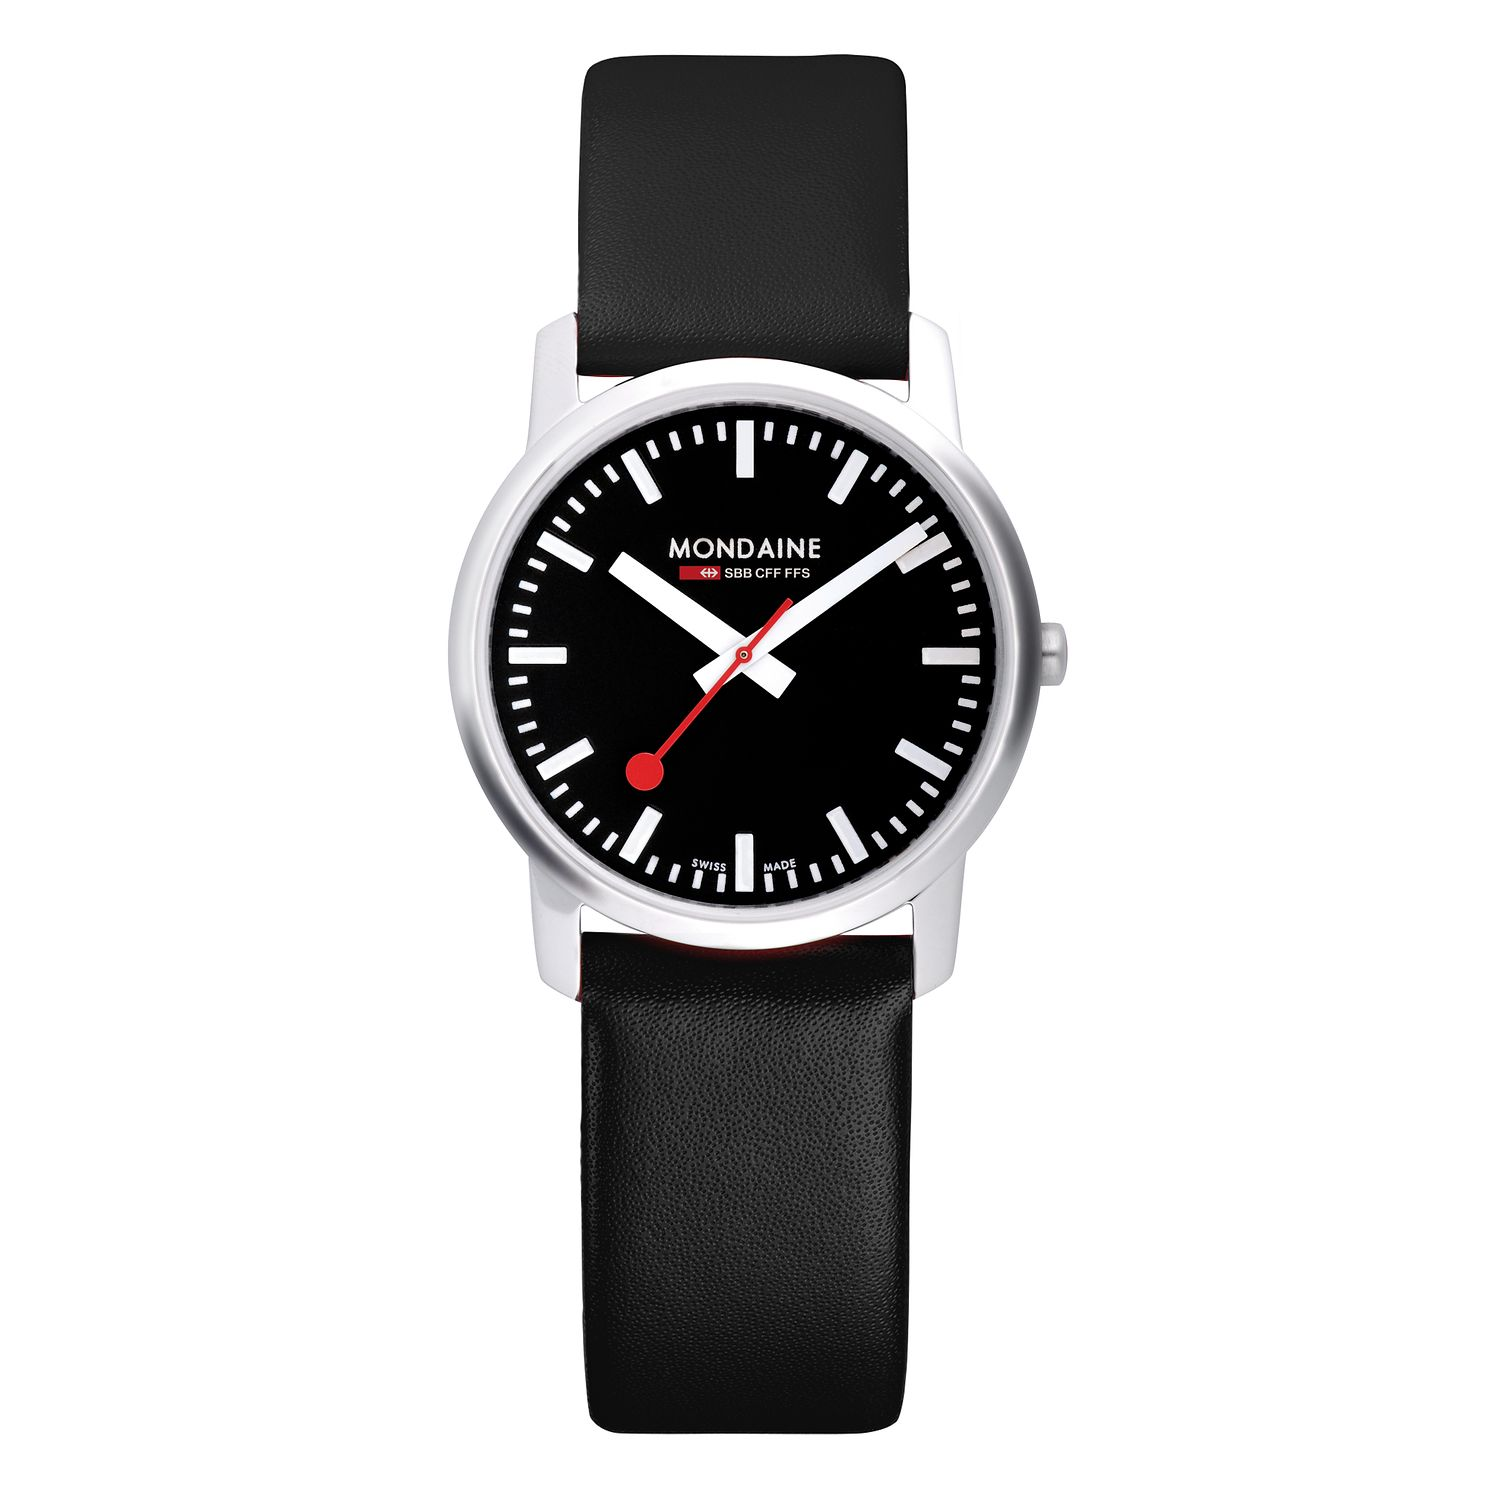 Mondaine SBB Simply Elegant Men's Black Leather Strap Watch - Product number 5837766